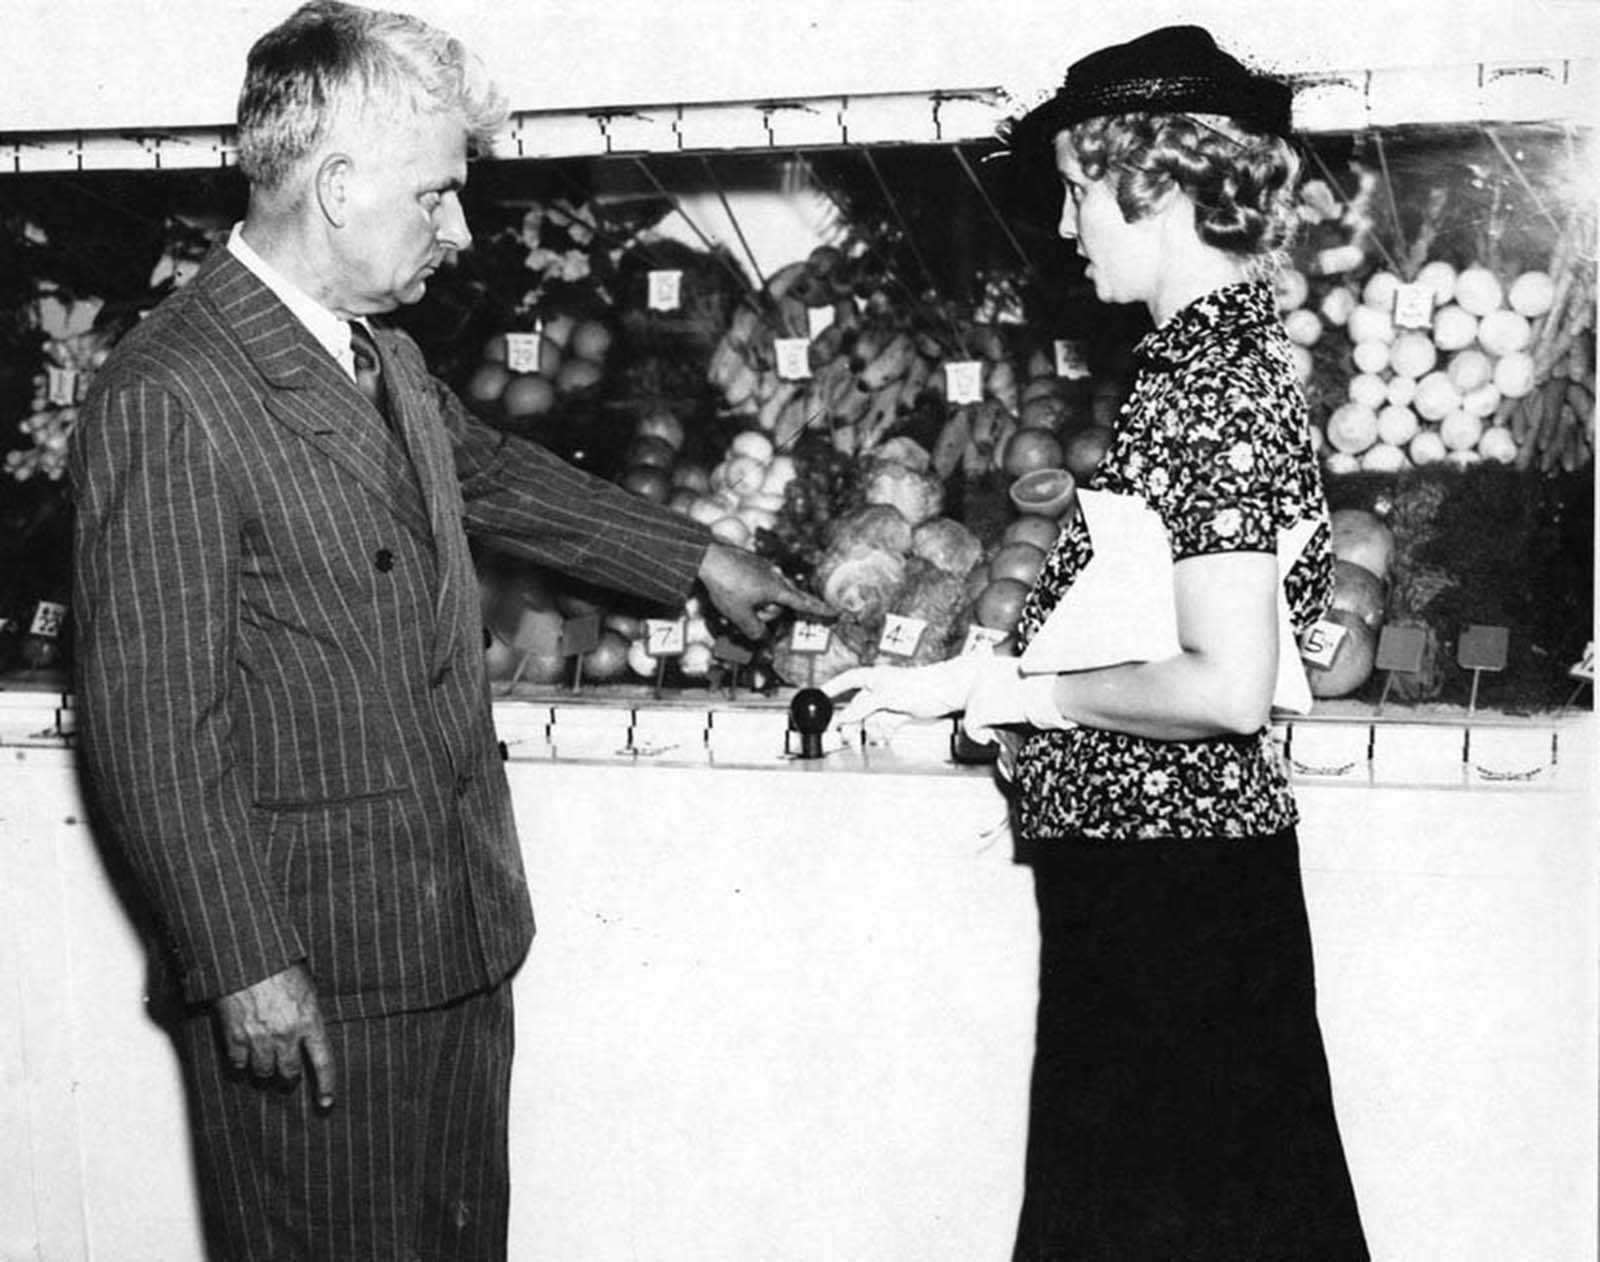 Saunders shows a customer how to select produce. The historian Freeman writes,